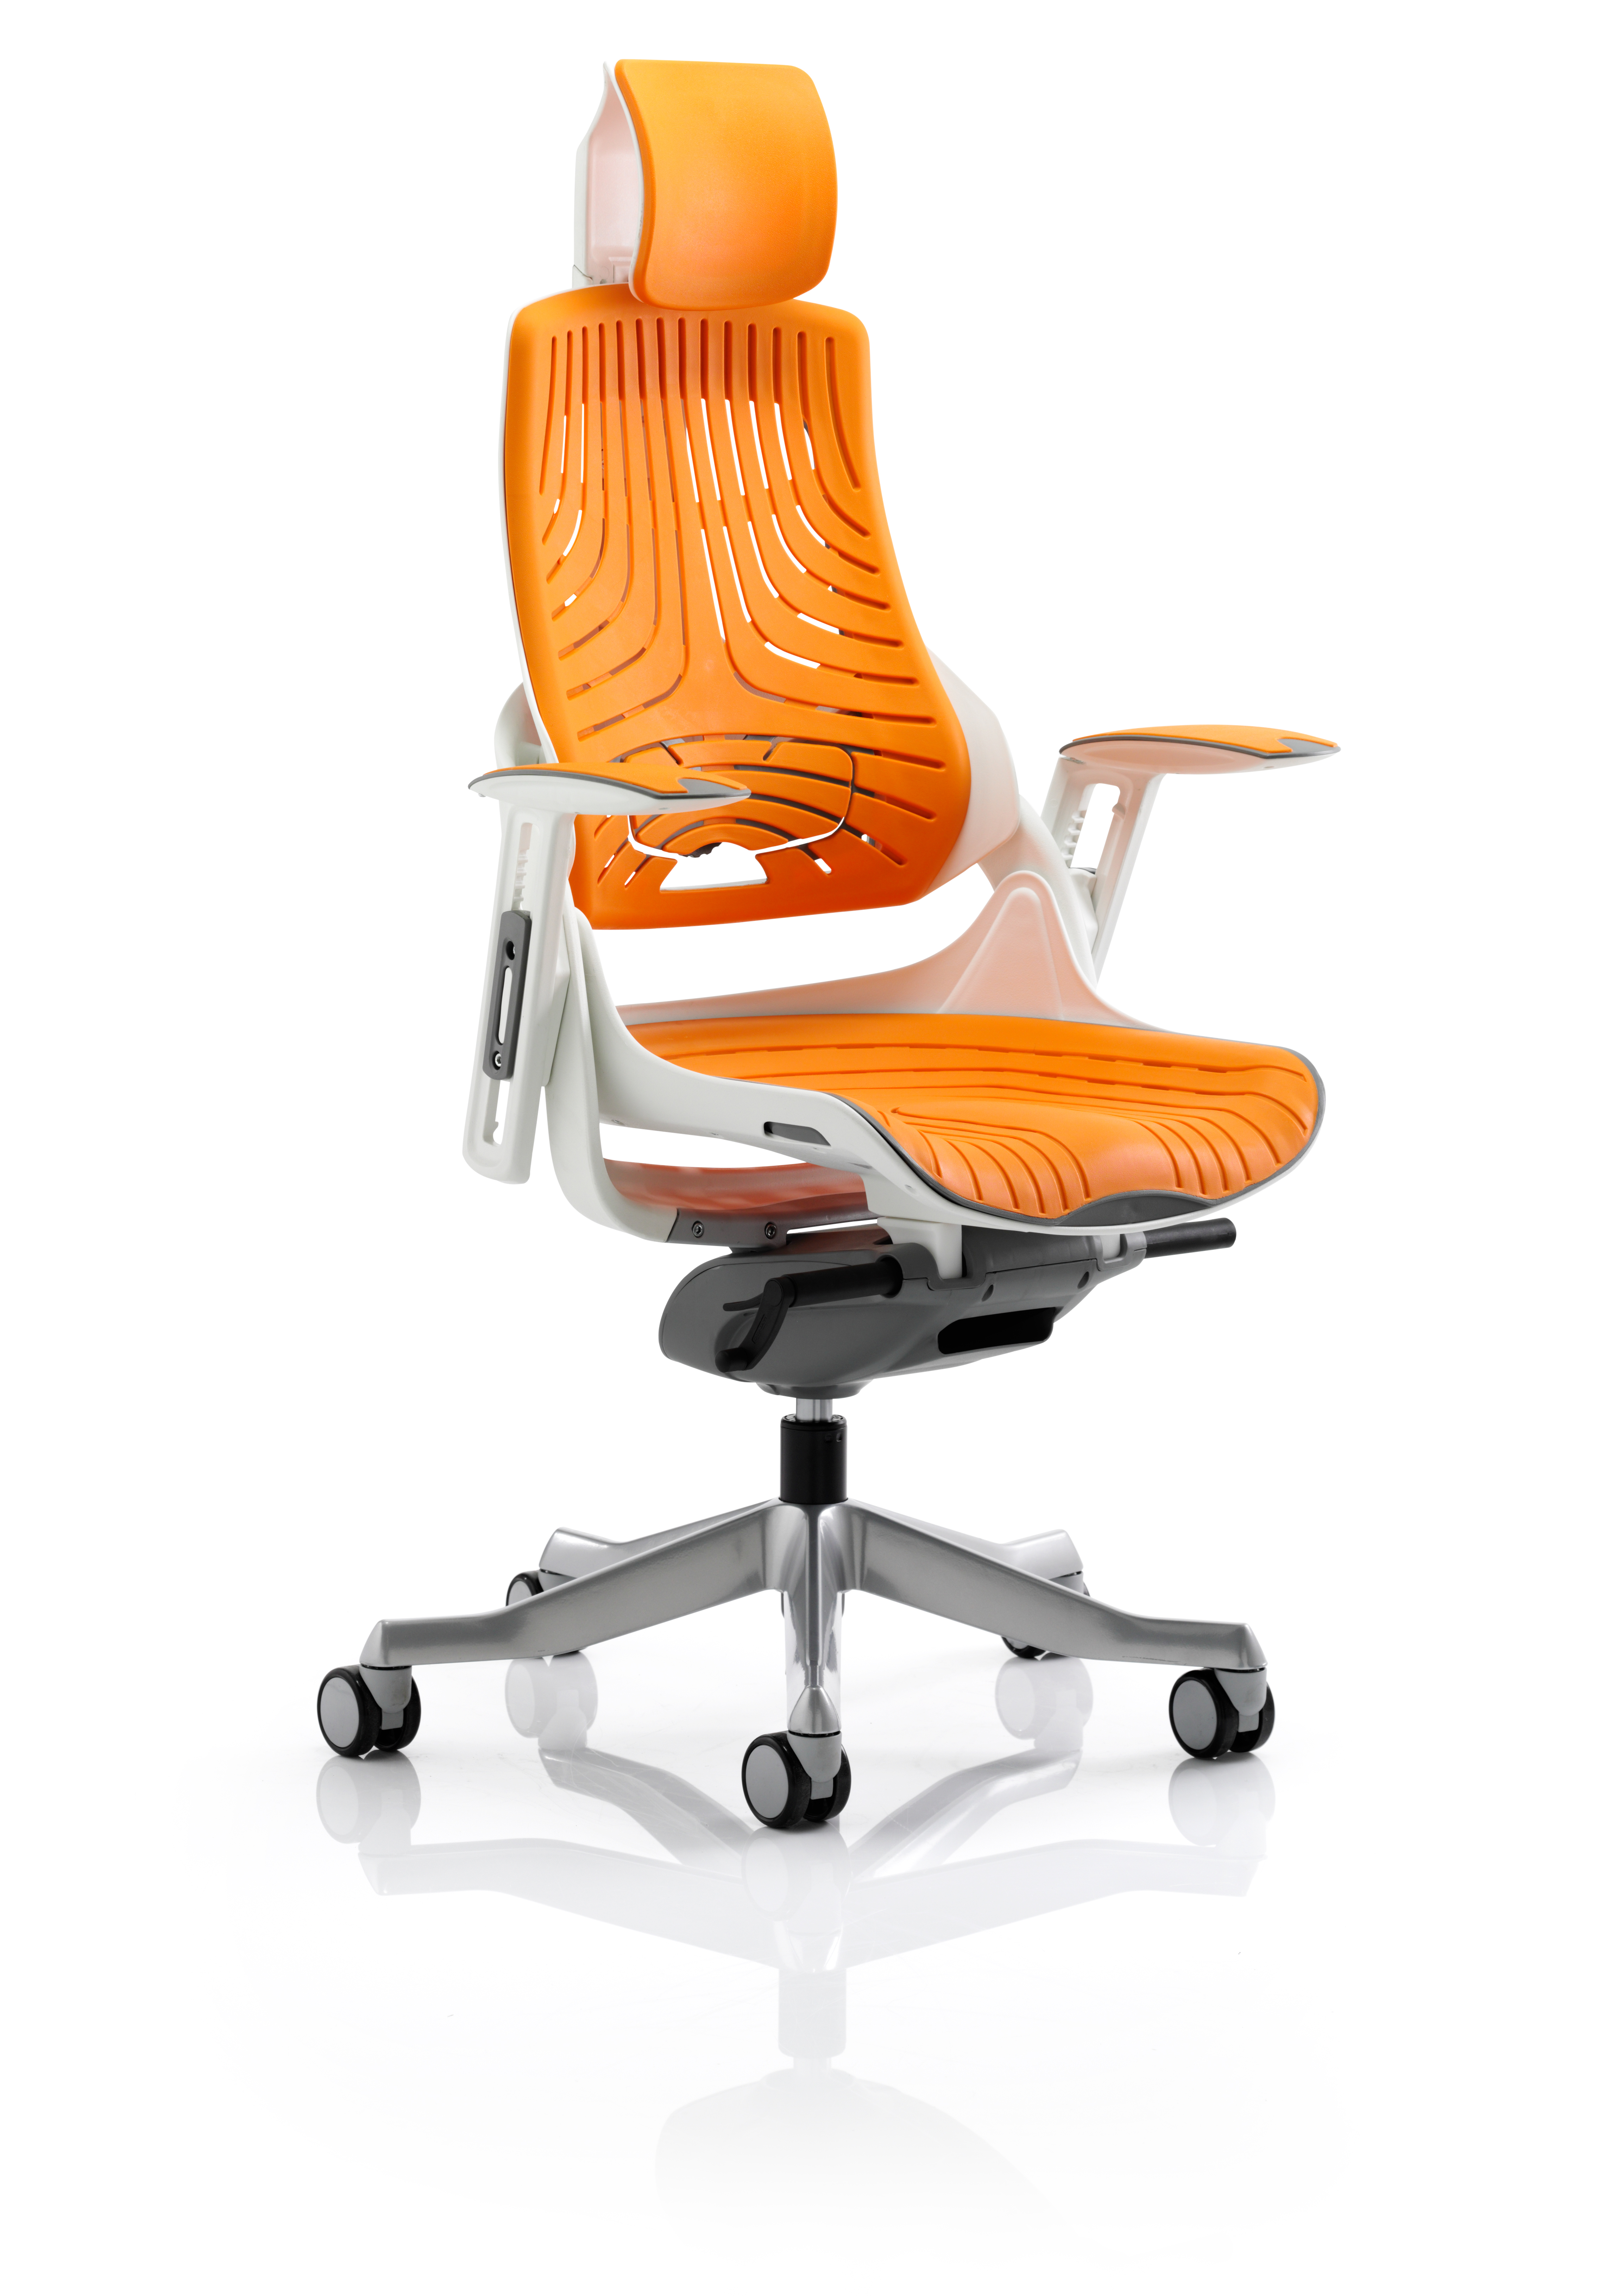 Executive Chairs Zure Elastomer Gel Orange With Arms With Headrest KC0165